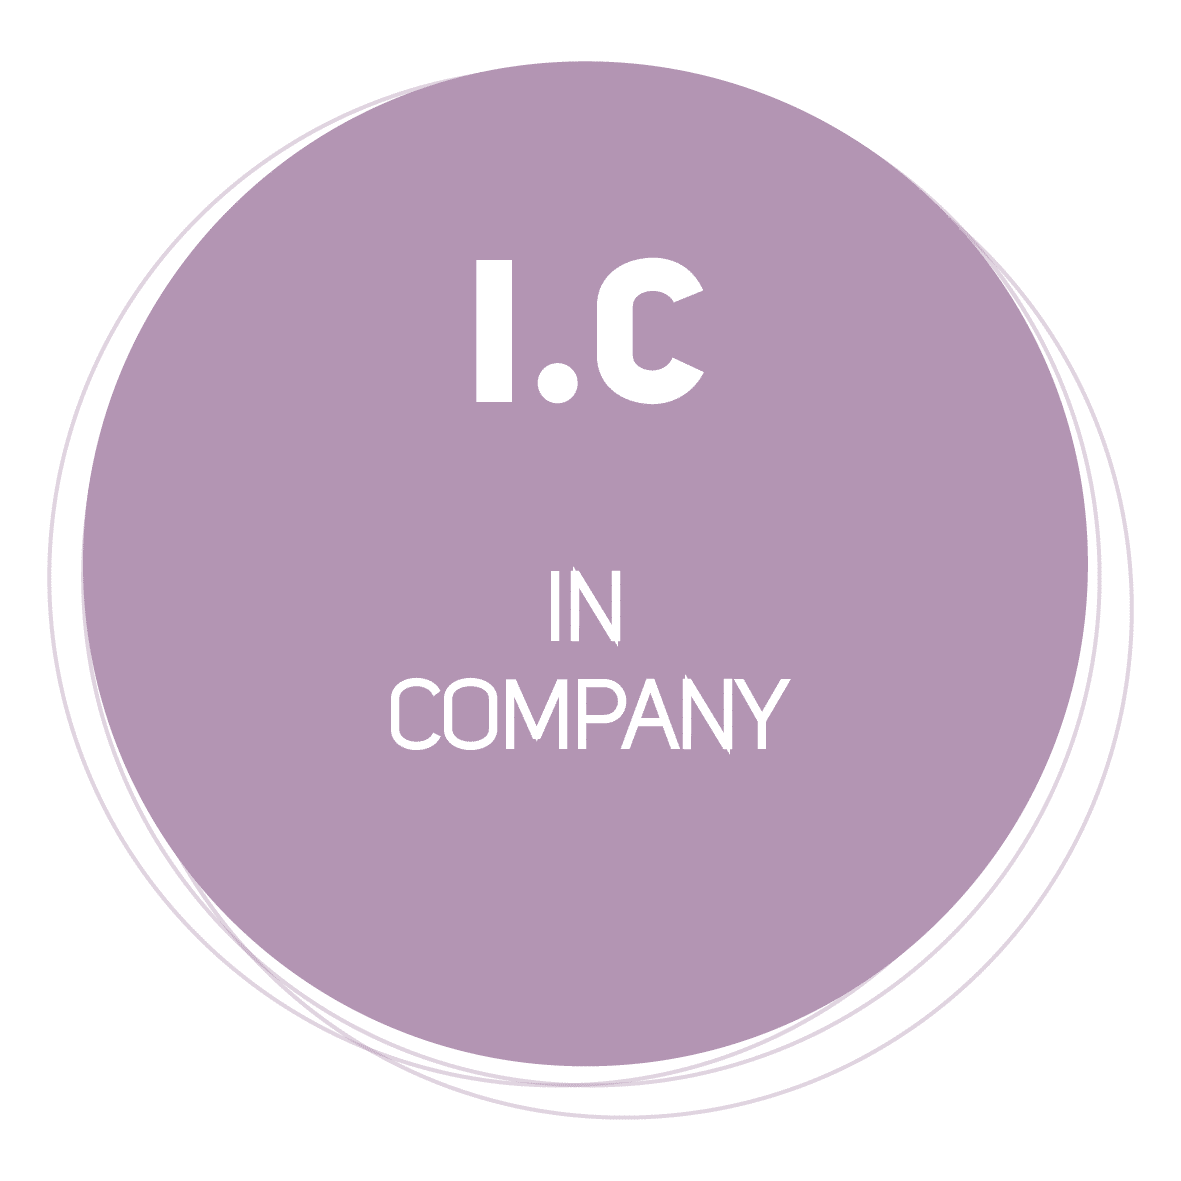 sites/41164617/In Company.png